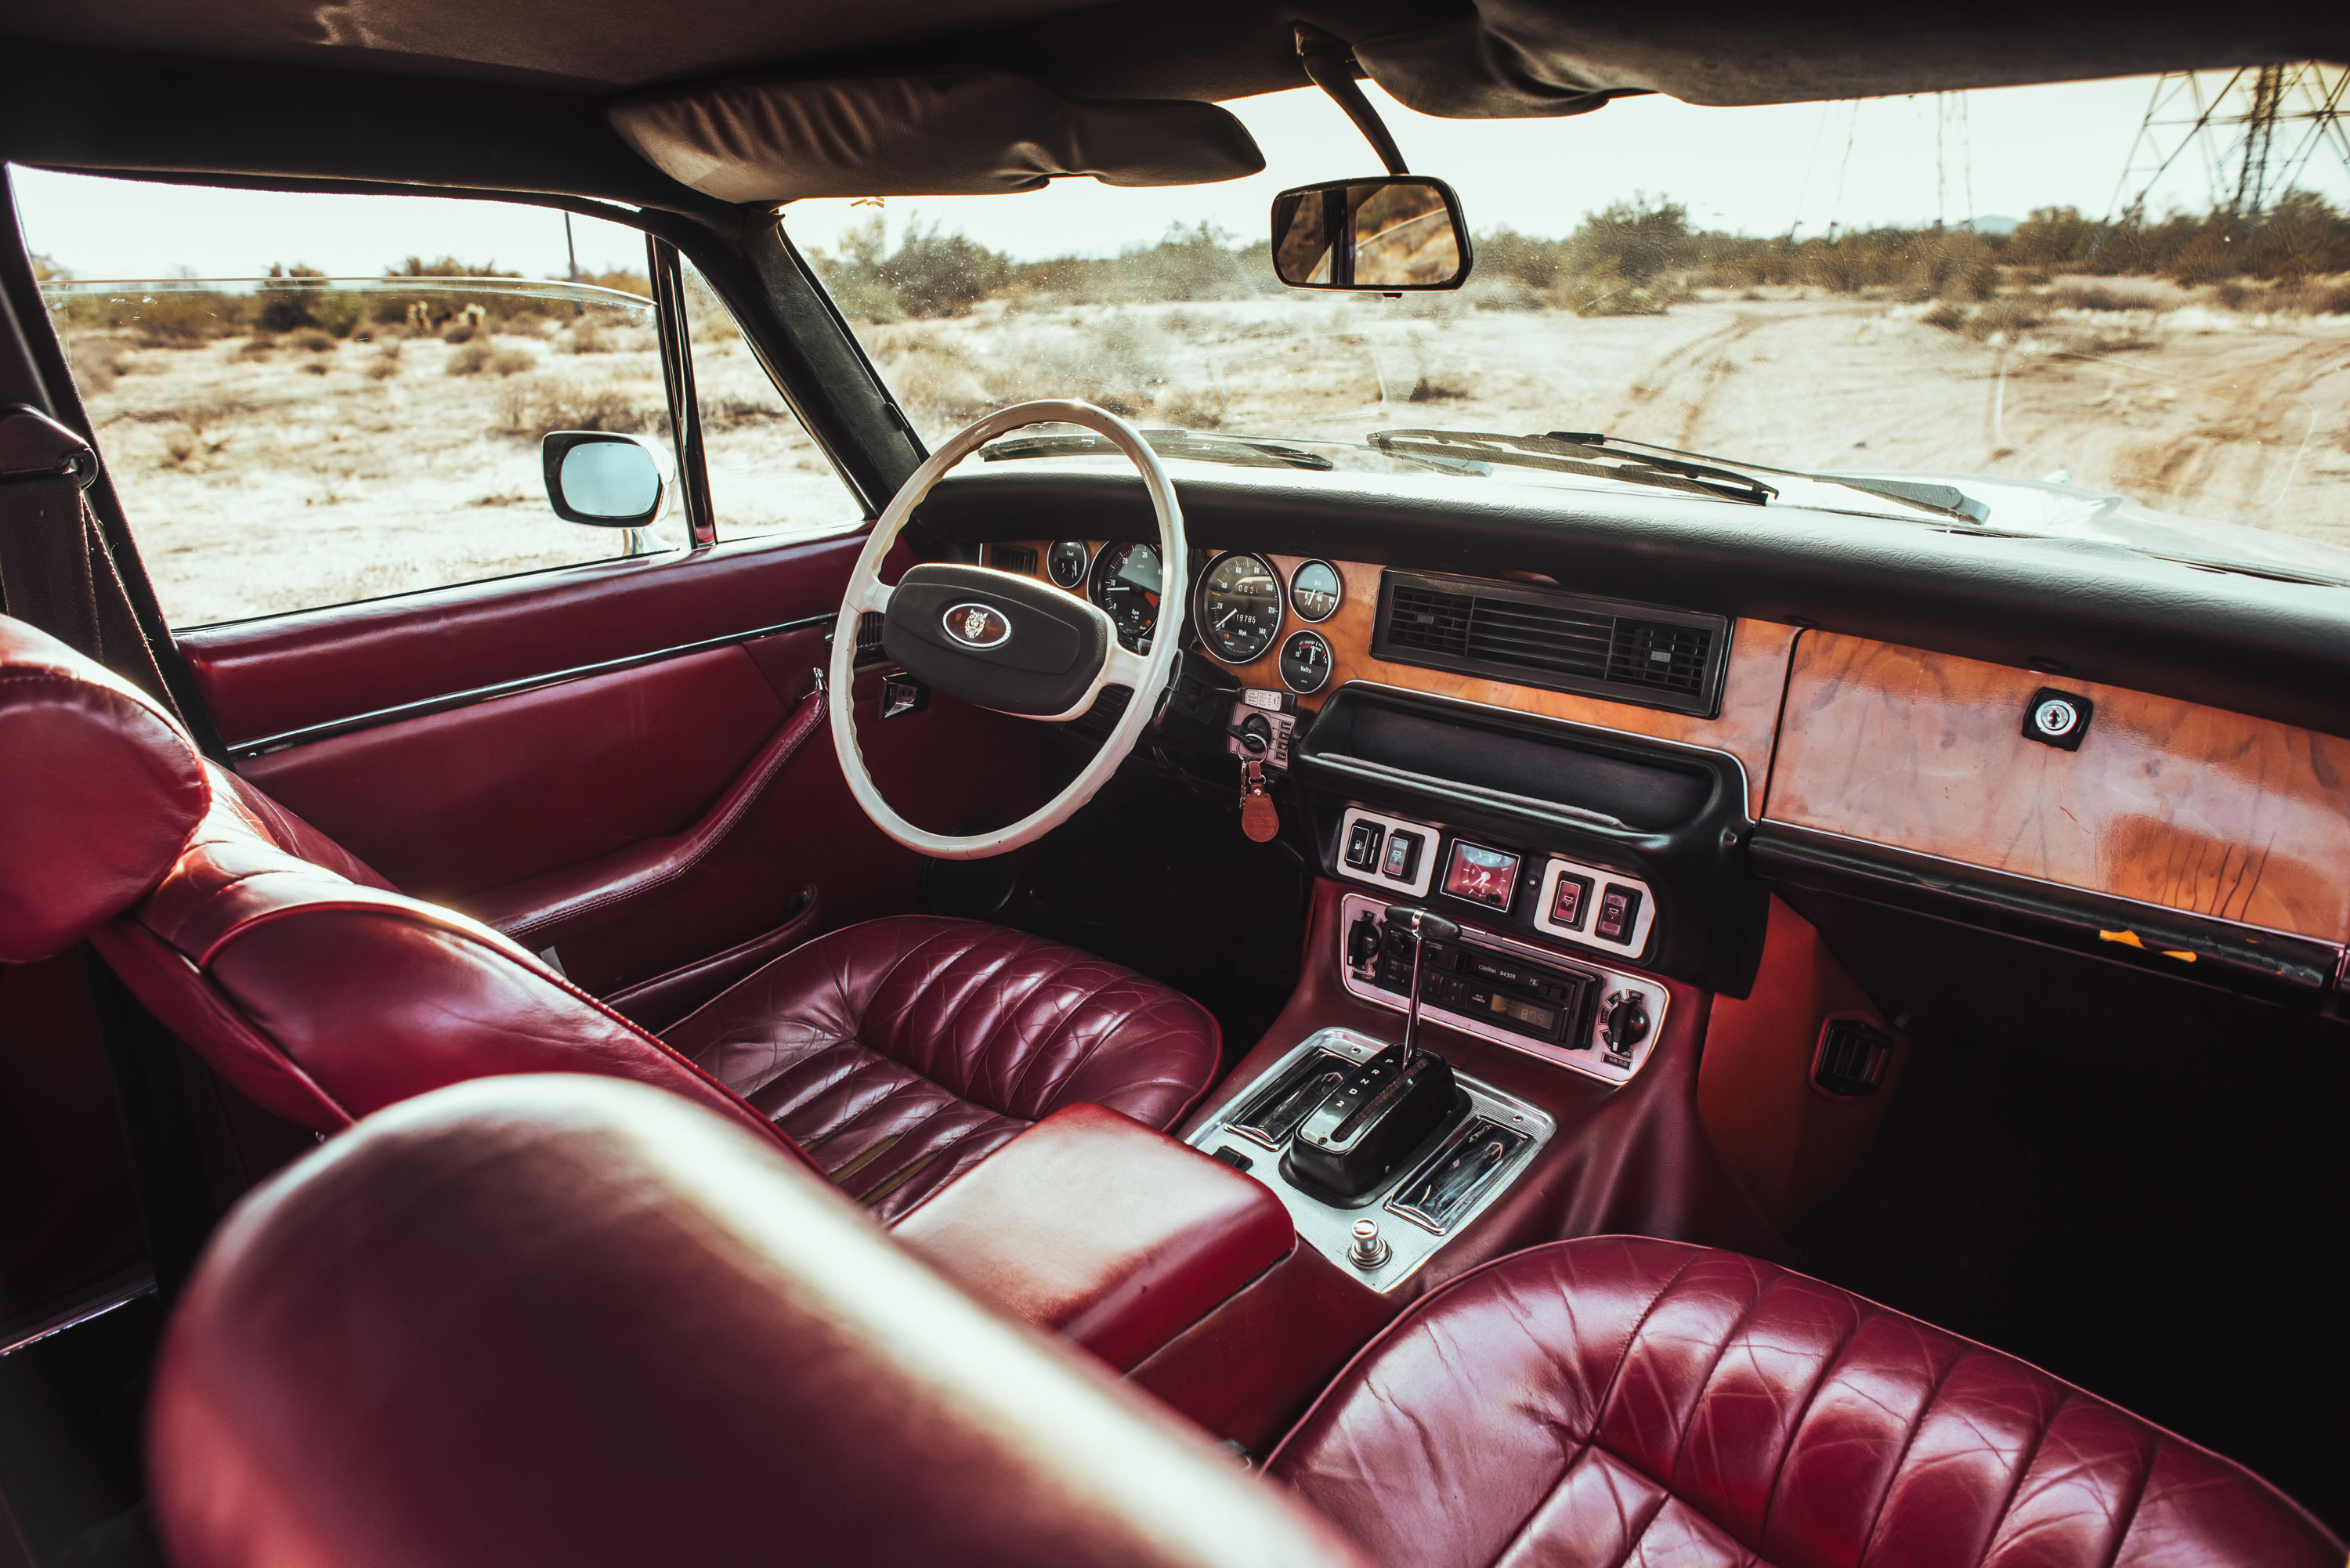 1974 Jaguar XJ6 interior